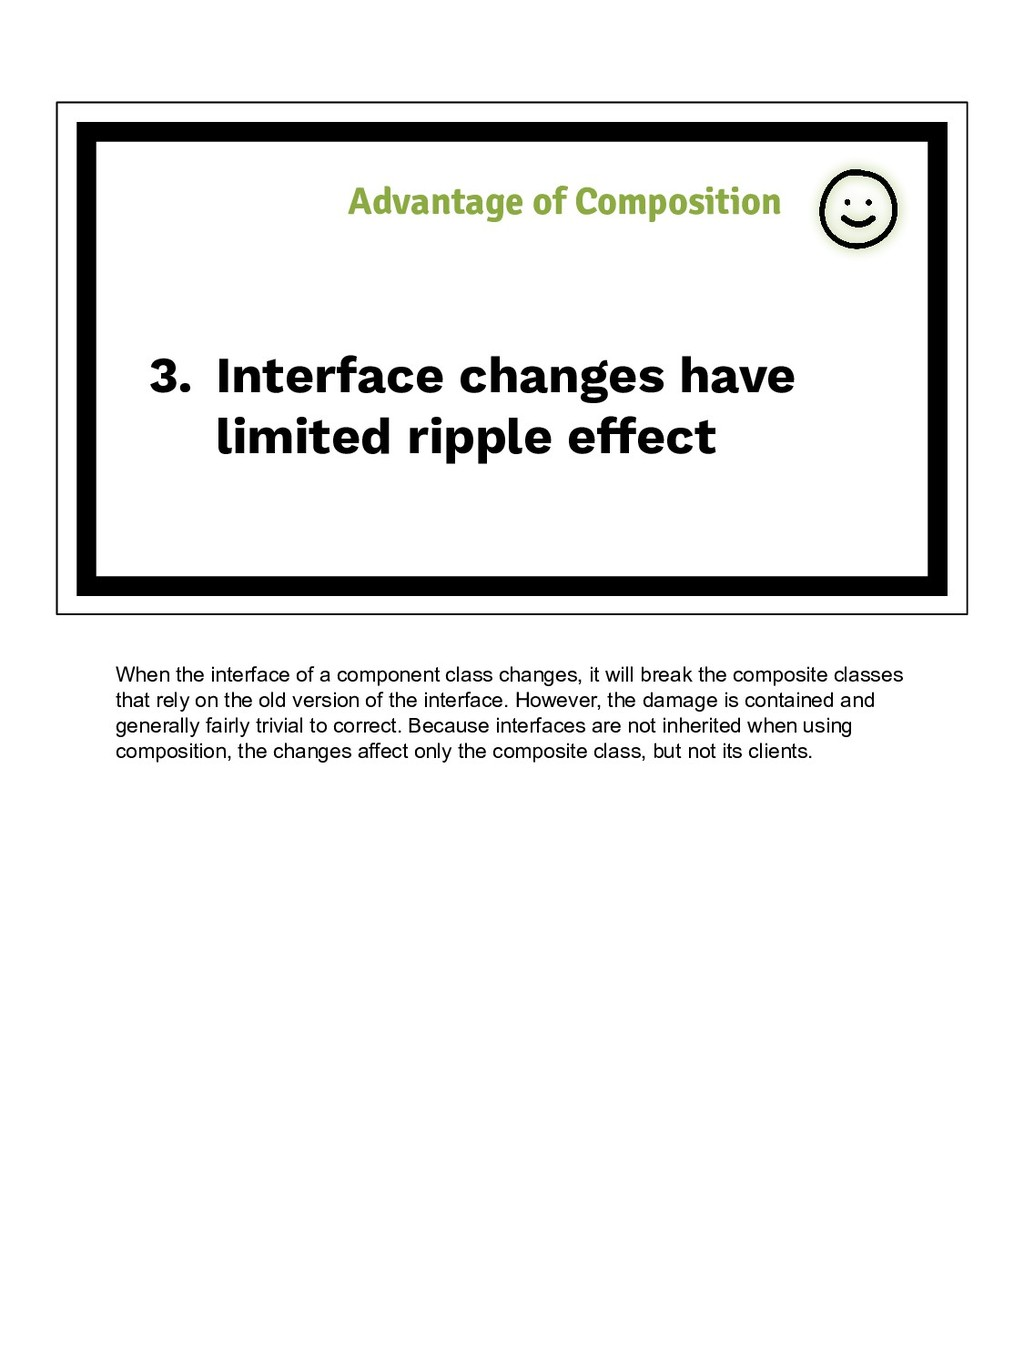 3. Interface changes have limited ripple effect...